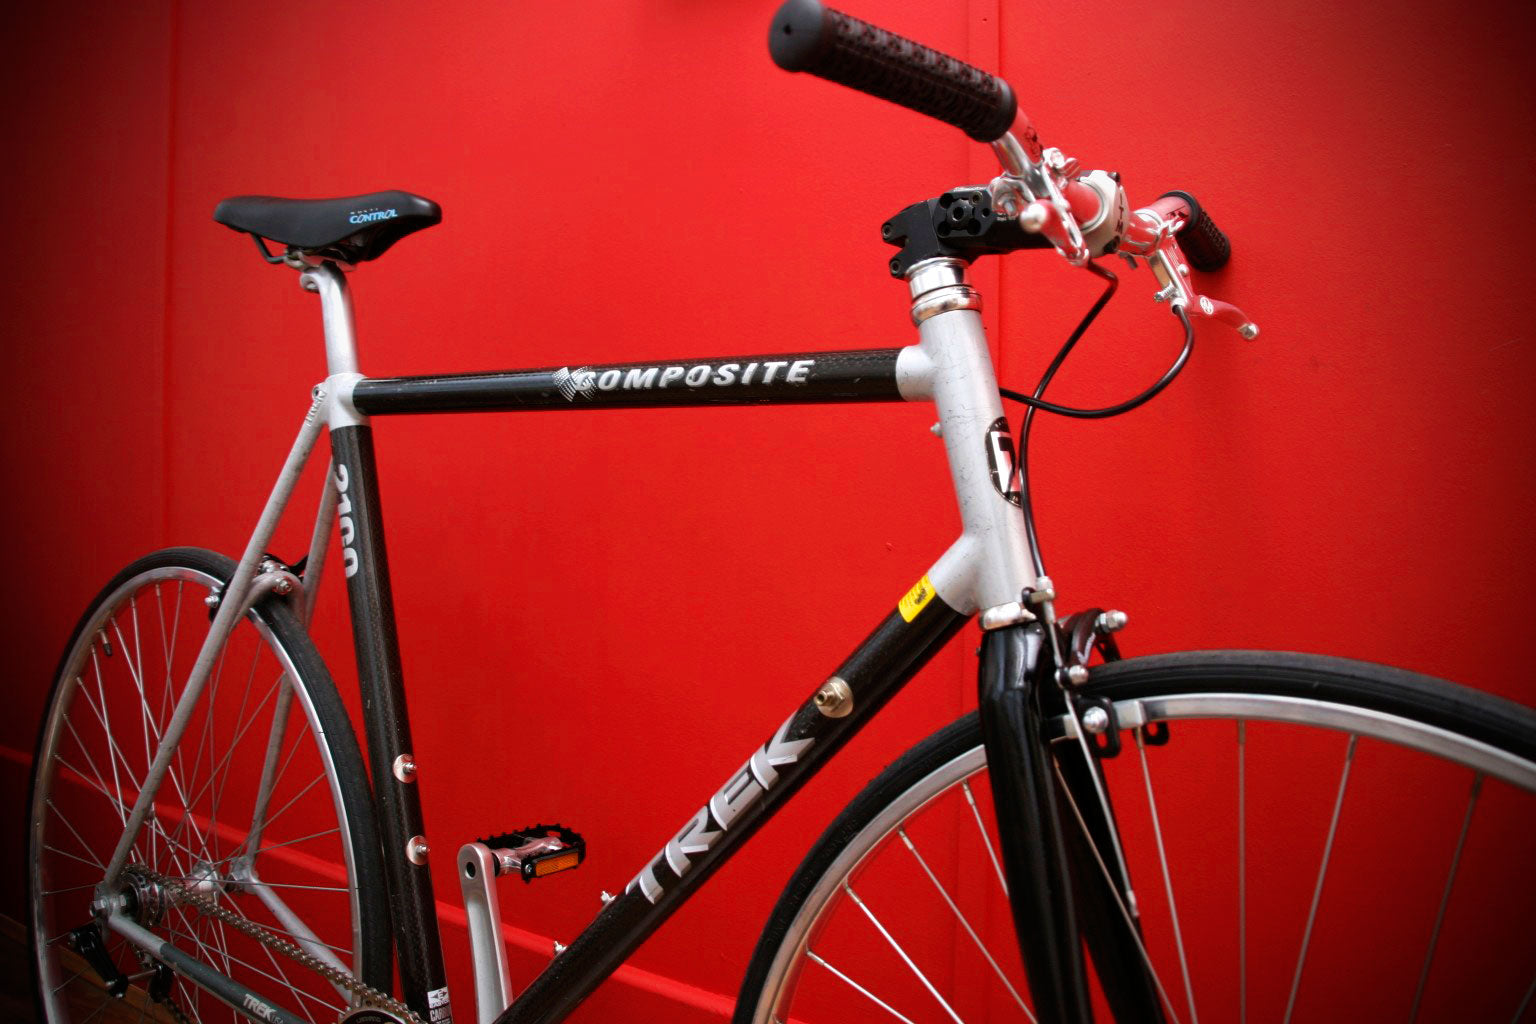 Trek carbon bike